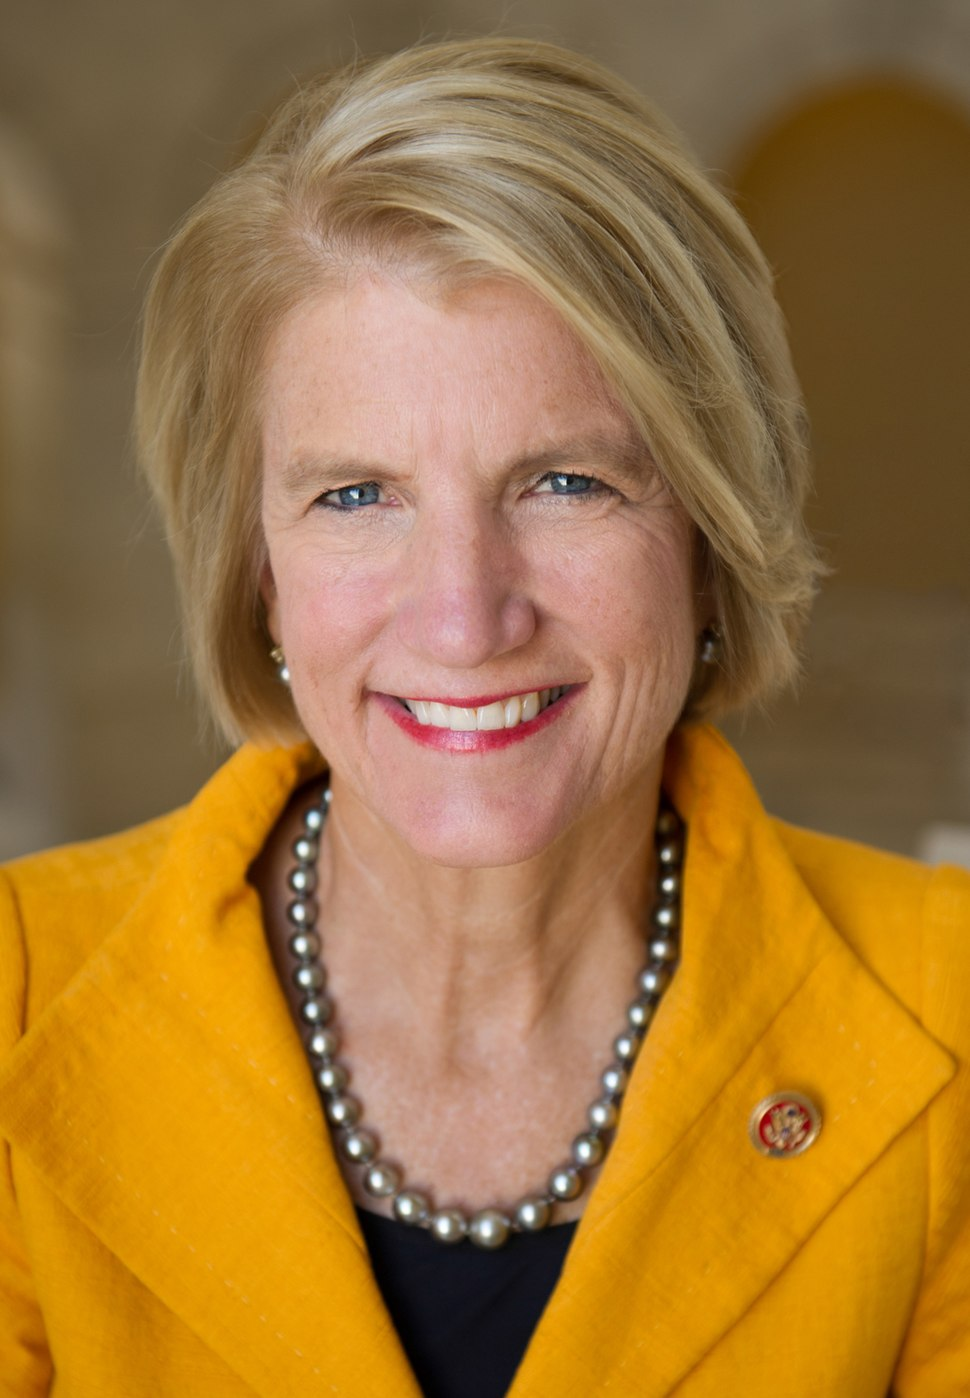 Shelley moore capito (cropped)